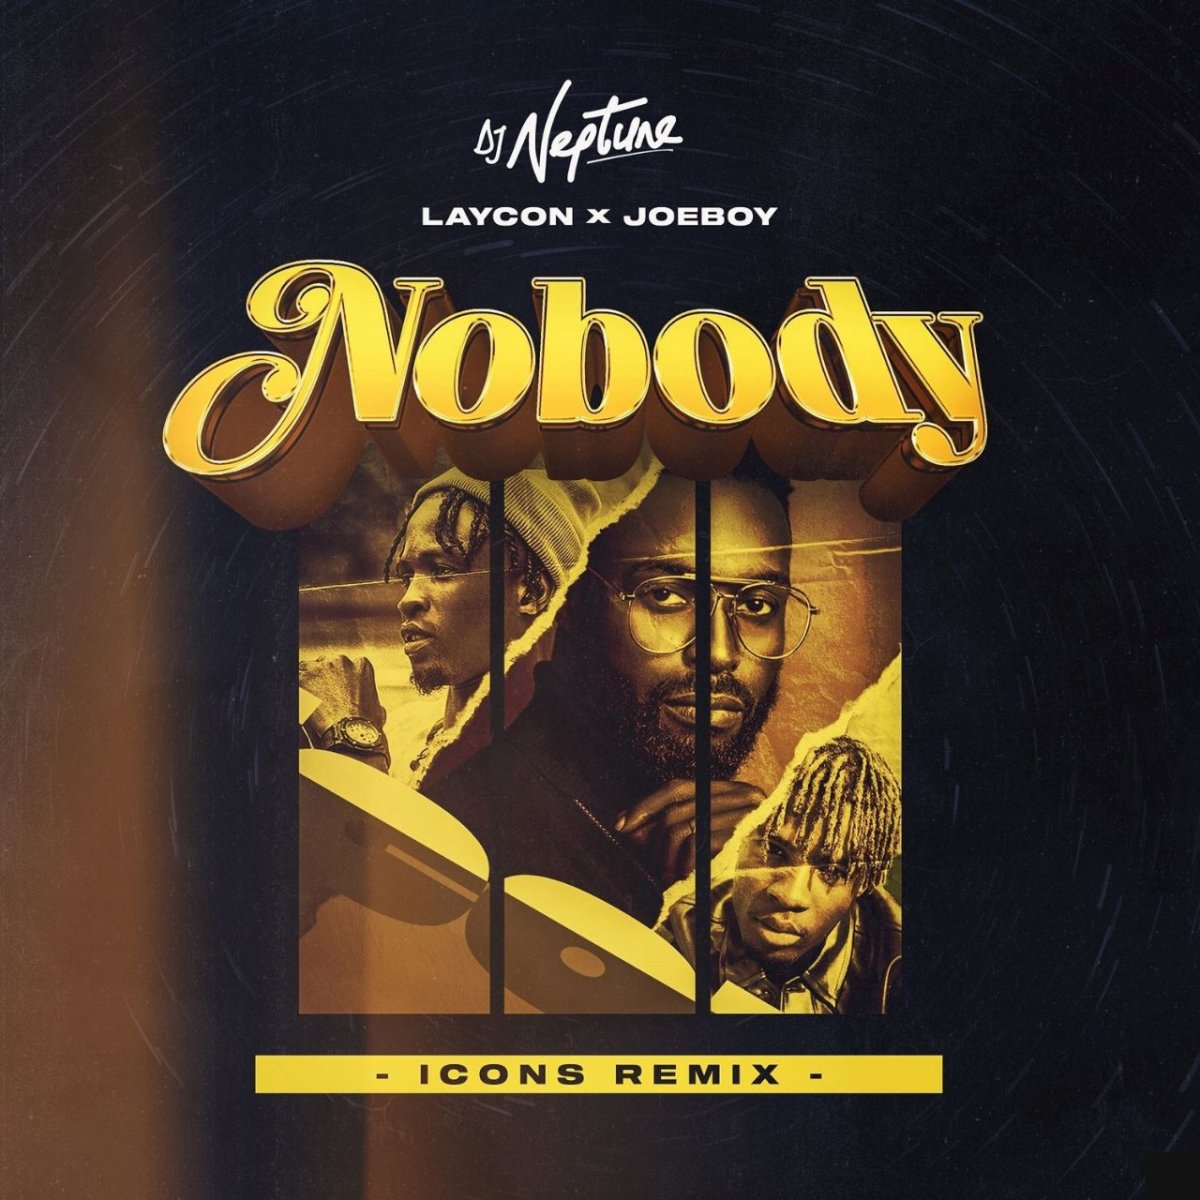 Dj Neptune Ft Laycon X Joeboy Nobody Icons Remix Lyrics Crownlyric Com (tune in to the king of sounds and blues) greatness dj neptune joeboy pon deck. dj neptune ft laycon x joeboy nobody